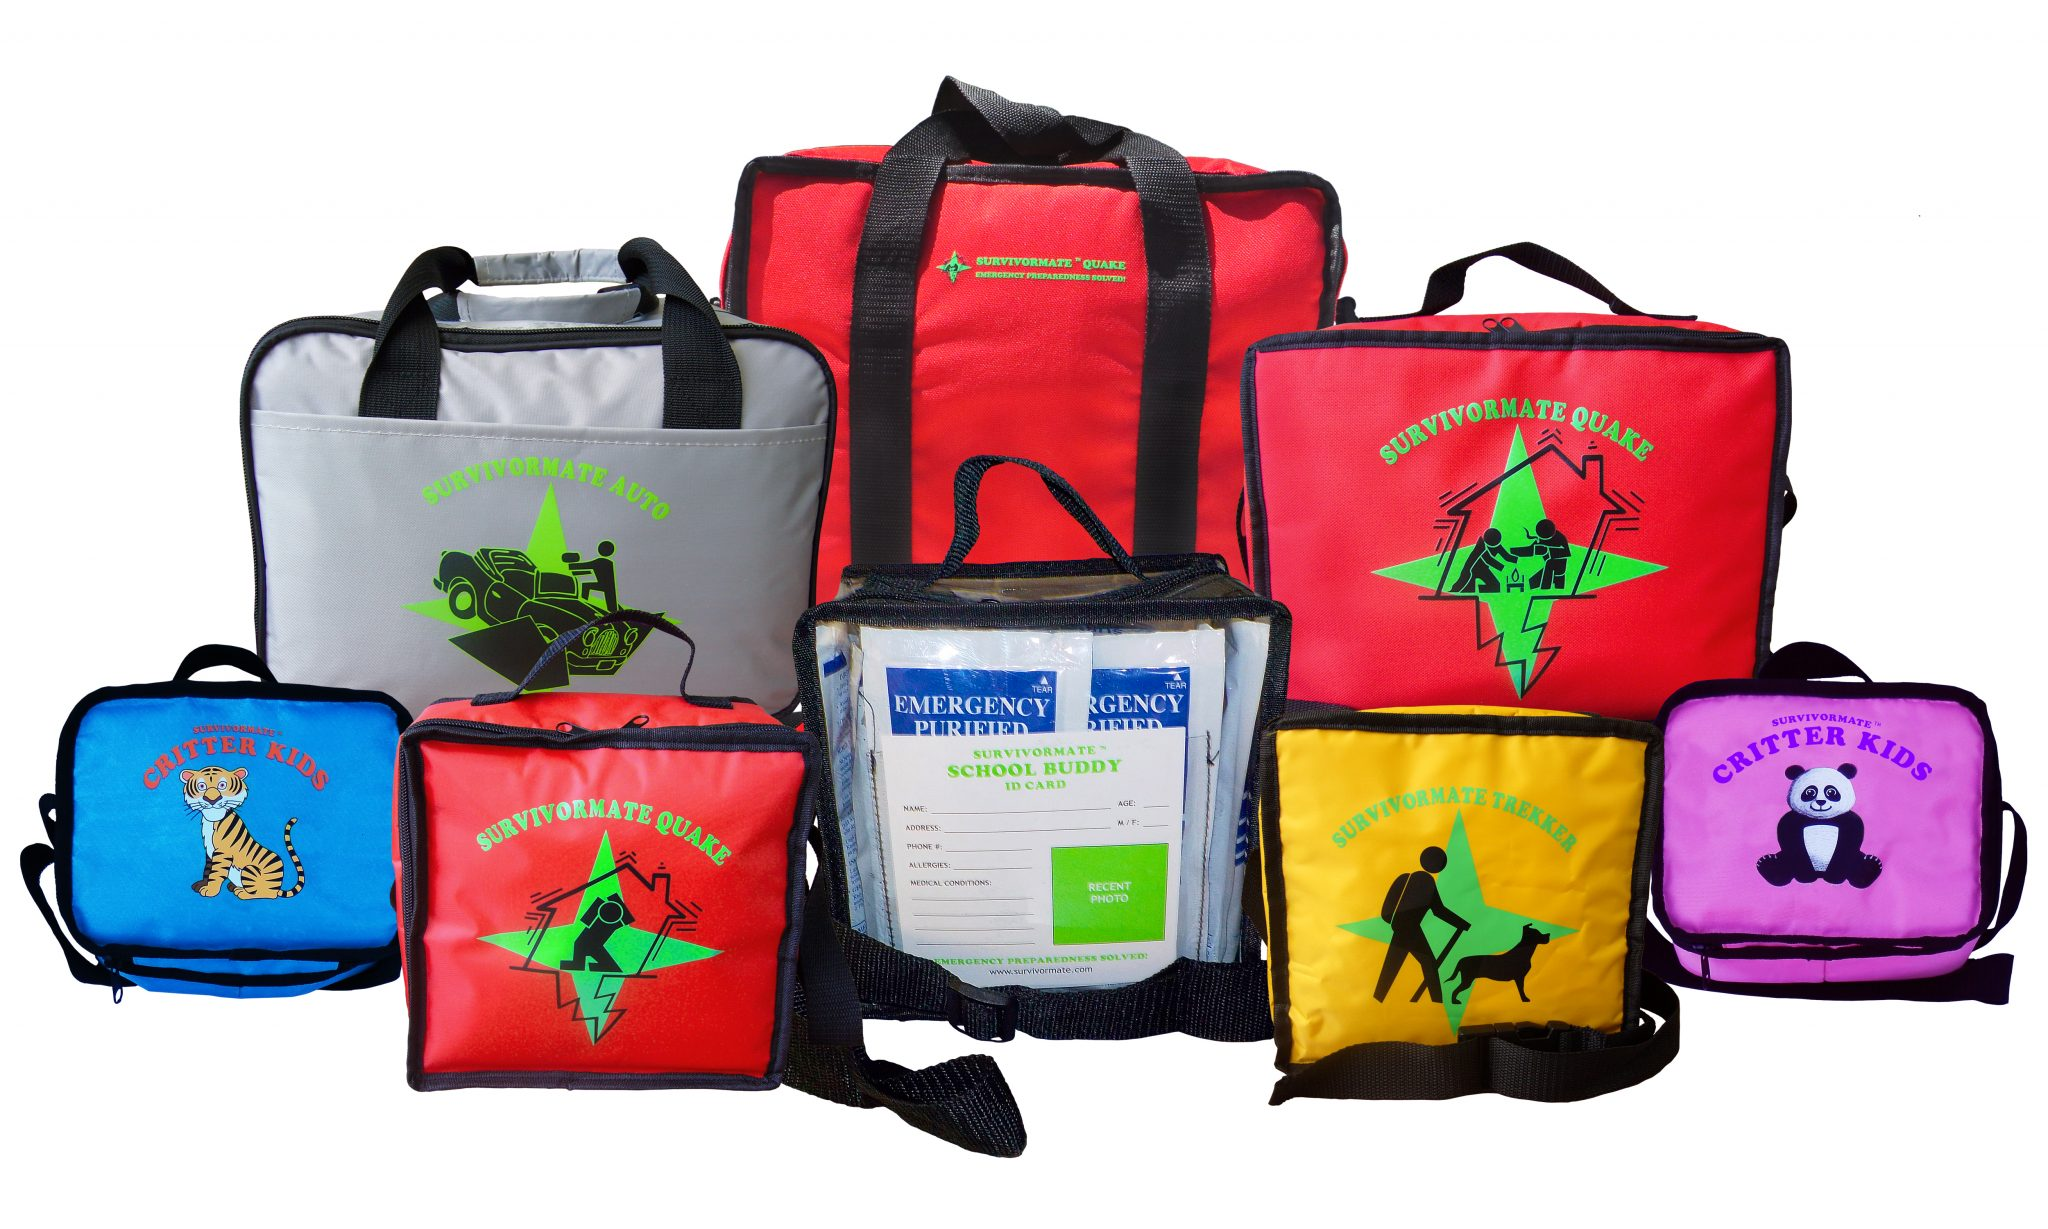 Survivormate Emergency Kits